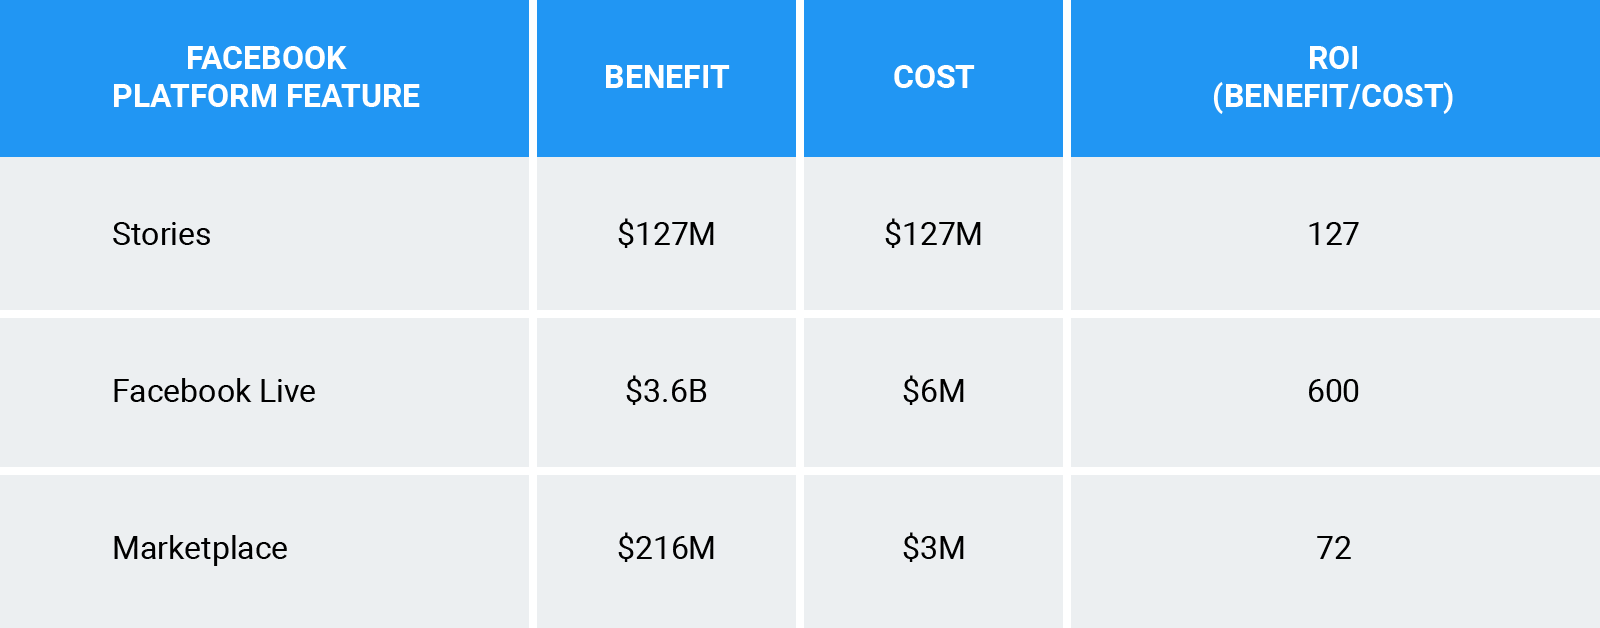 Comparison of the three initiatives with their benefits and costs with an ROI metric or benefits/cost ratio